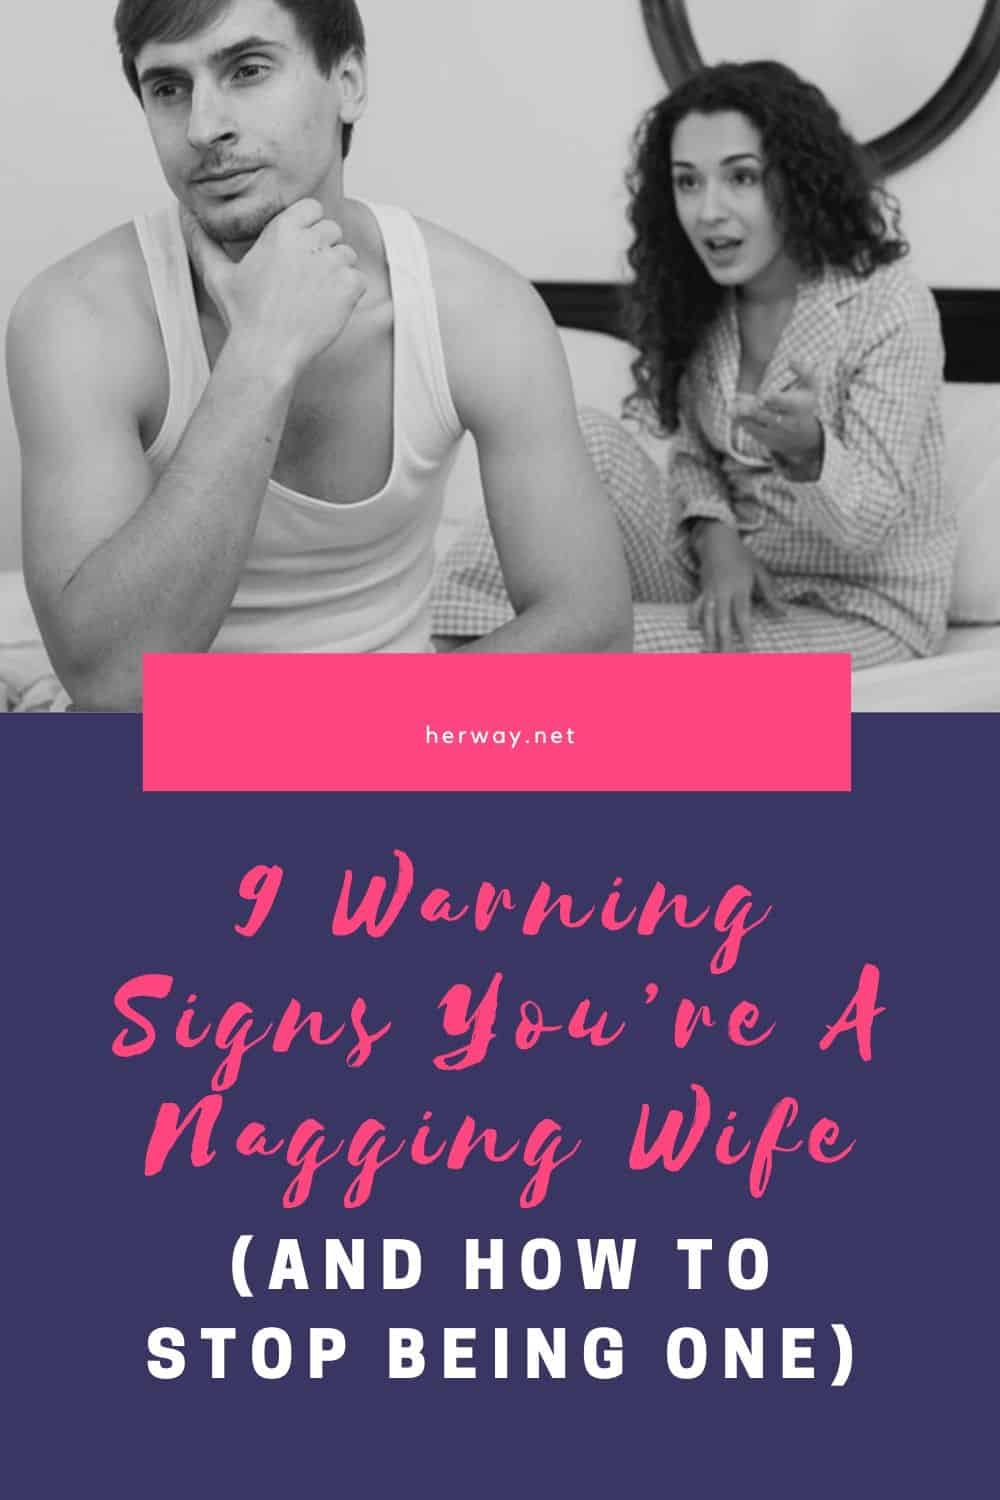 9 Warning Signs You're A Nagging Wife (And How To Stop Being One)